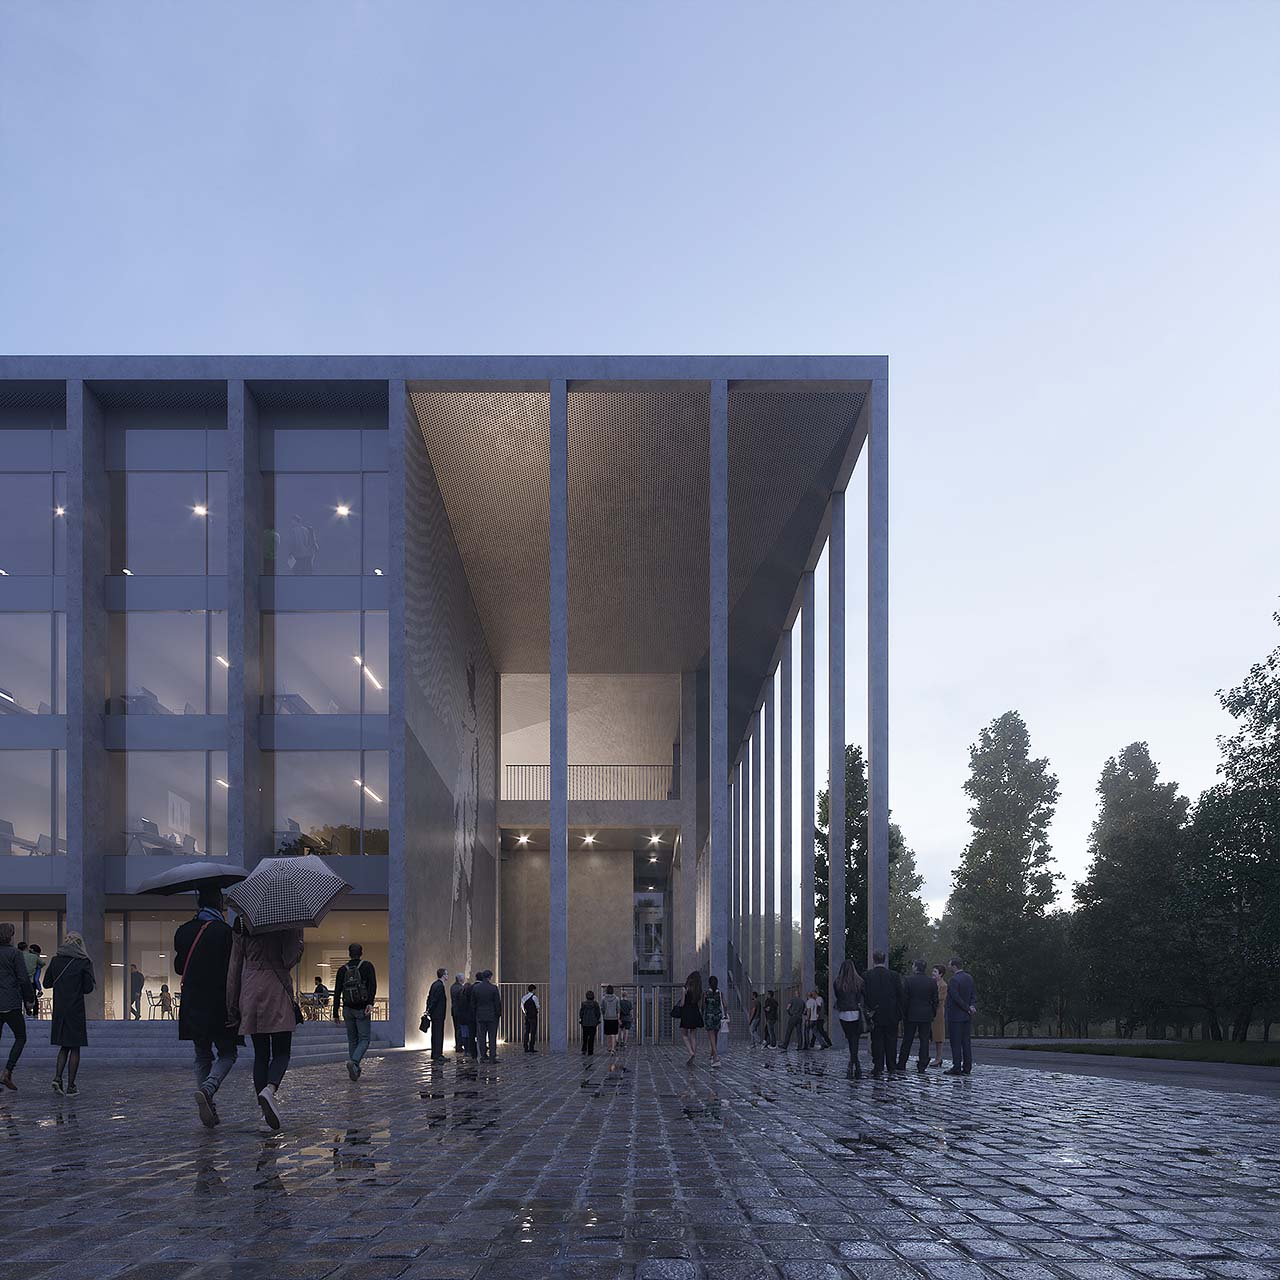 Evening competition rendering of the side entrance to the Polonia Warsawa football stadium: atmospheric light after rain, glossy stone pavement